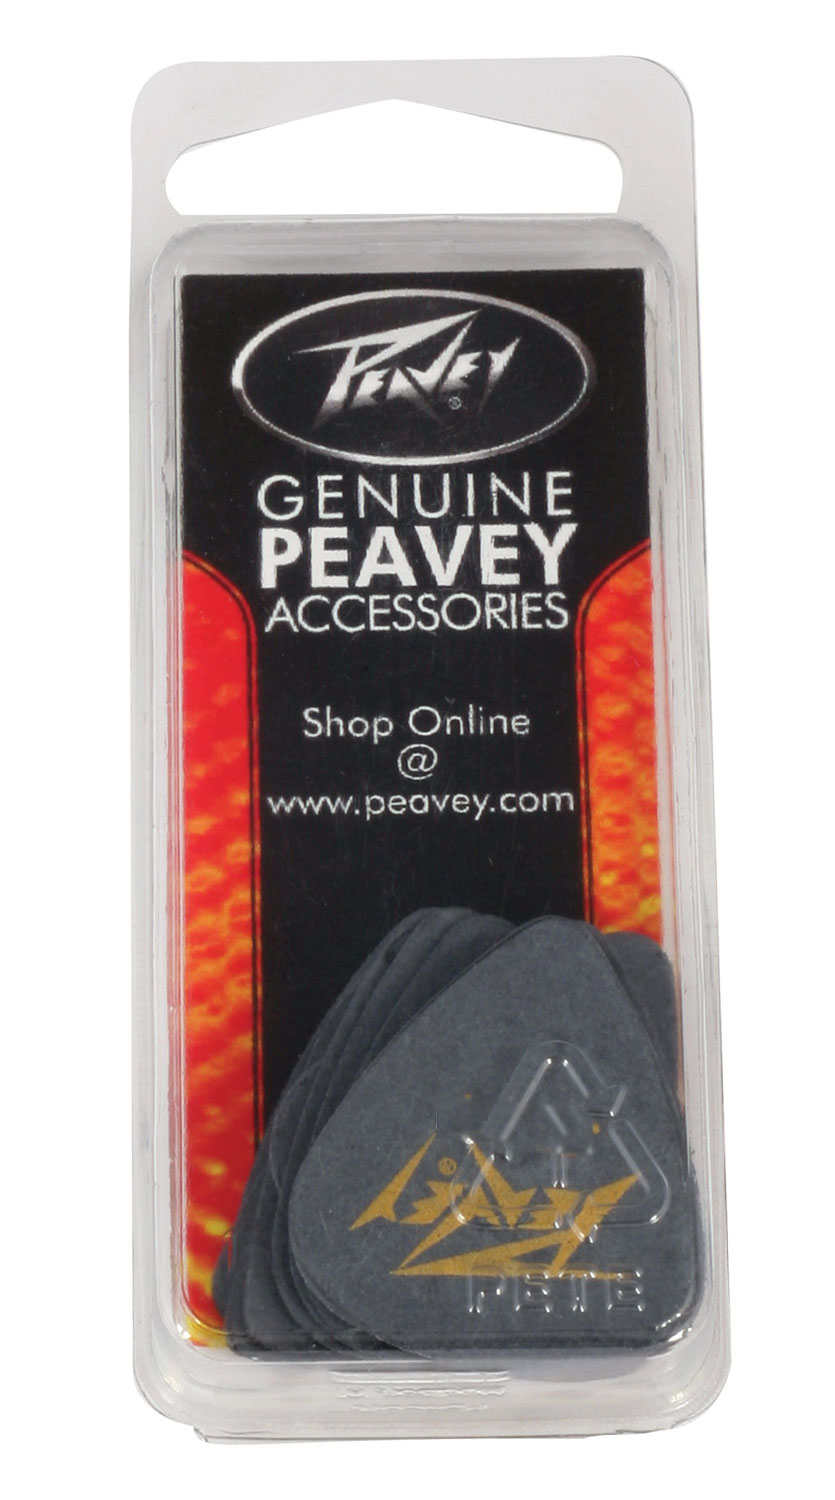 Peavey StarTex 351 - Thin Guitar Refill Pack with Matte Black Surface (479710)